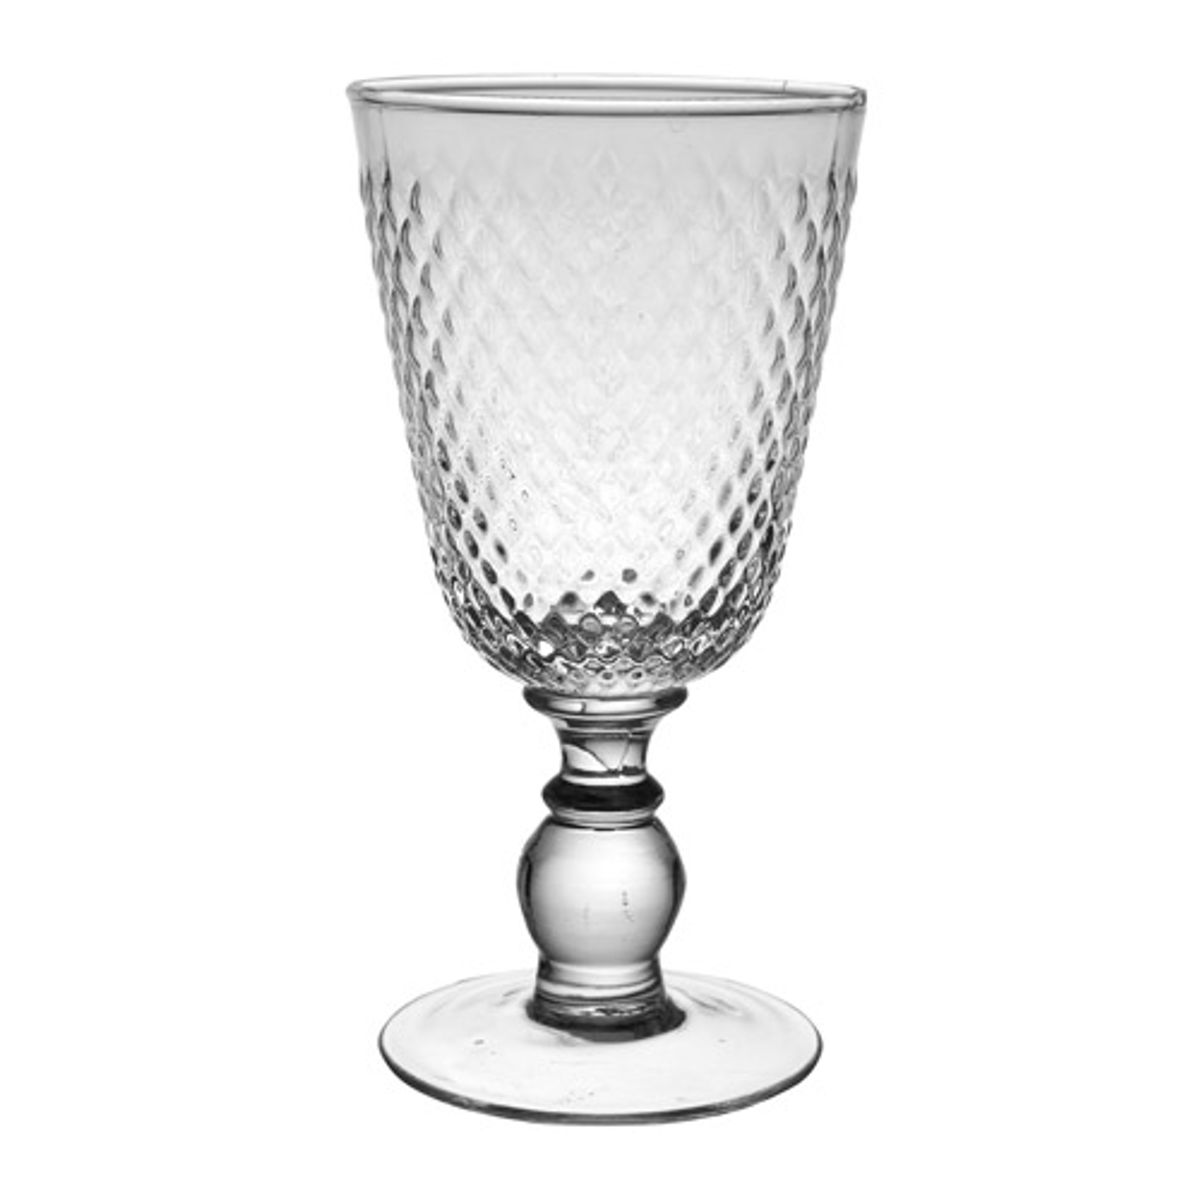 Verre en verre transparent (par 6) Duchesse Coté Table